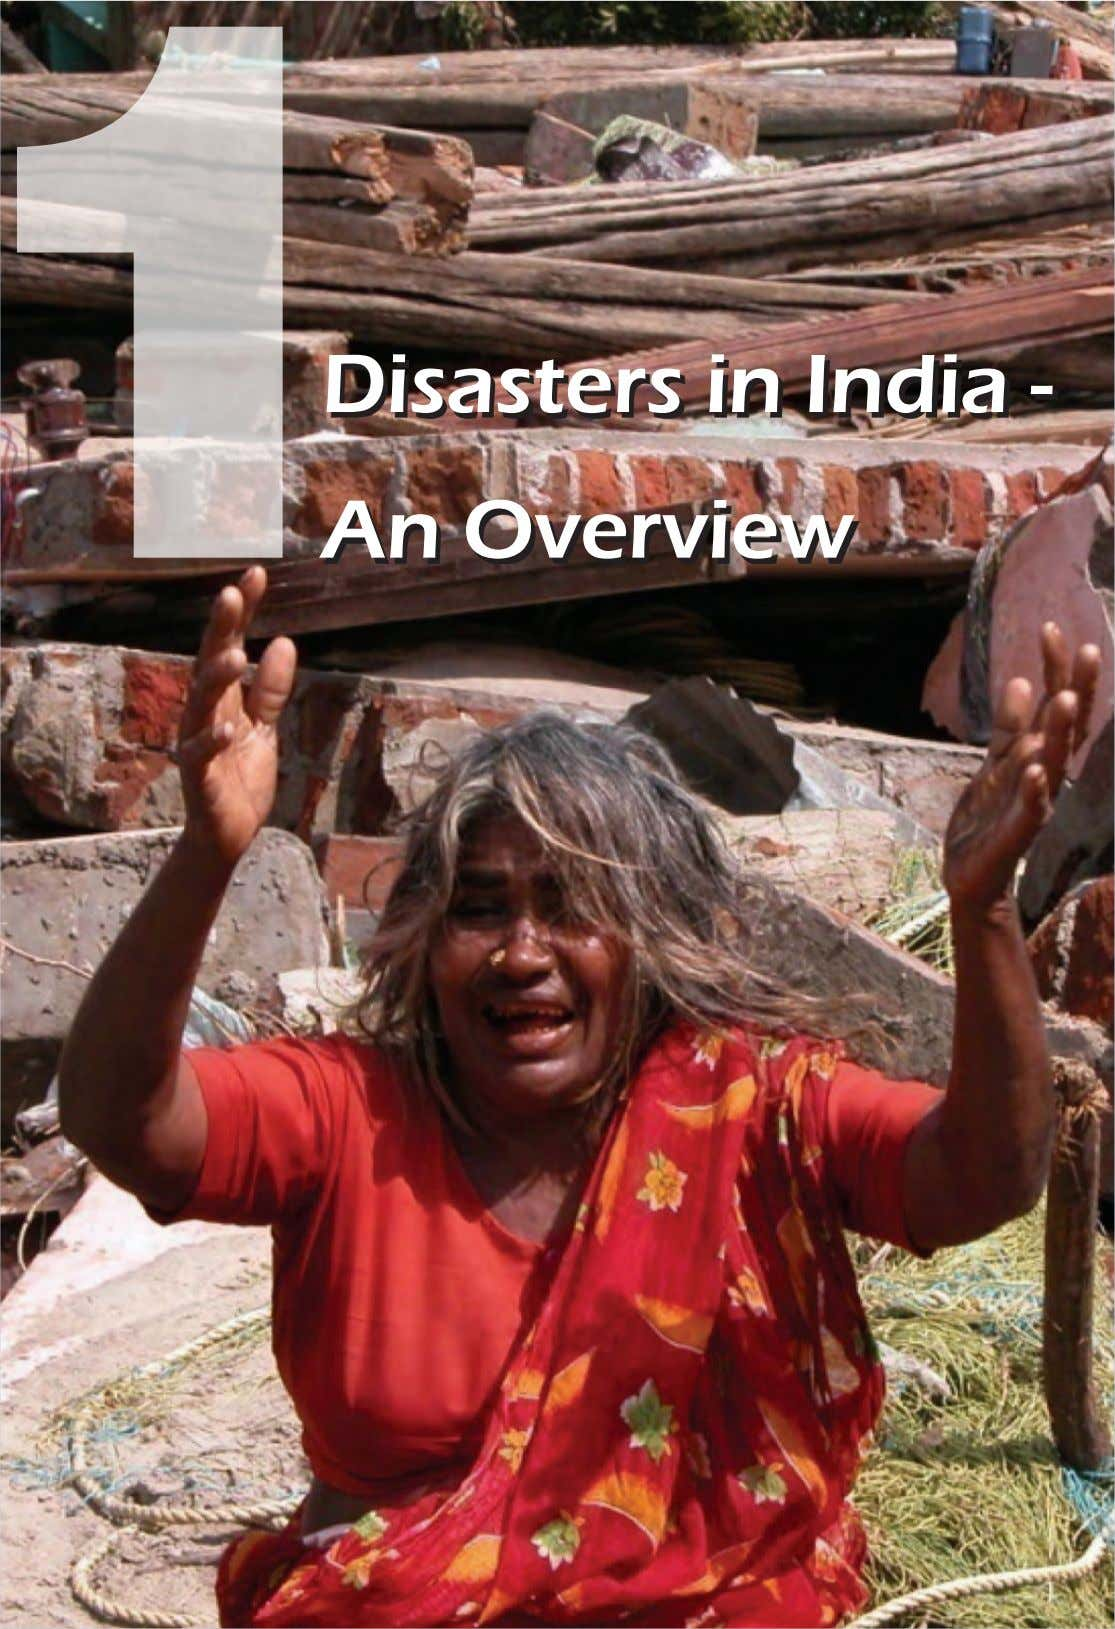 Disasters in India - An Overview